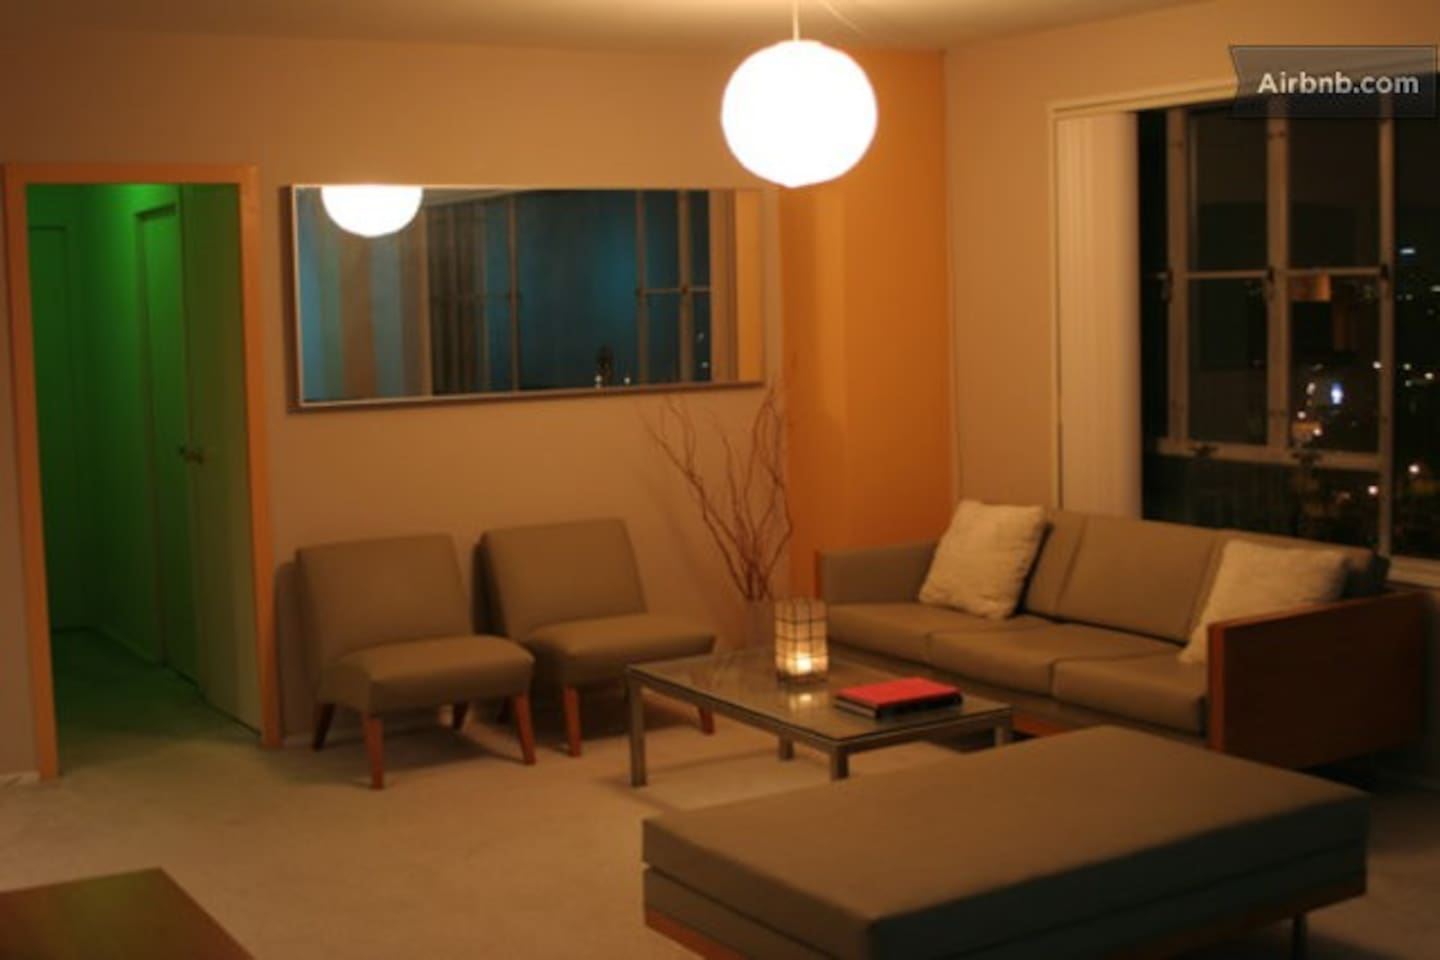 Living room. Modern minimalism style. Clean and peaceful.